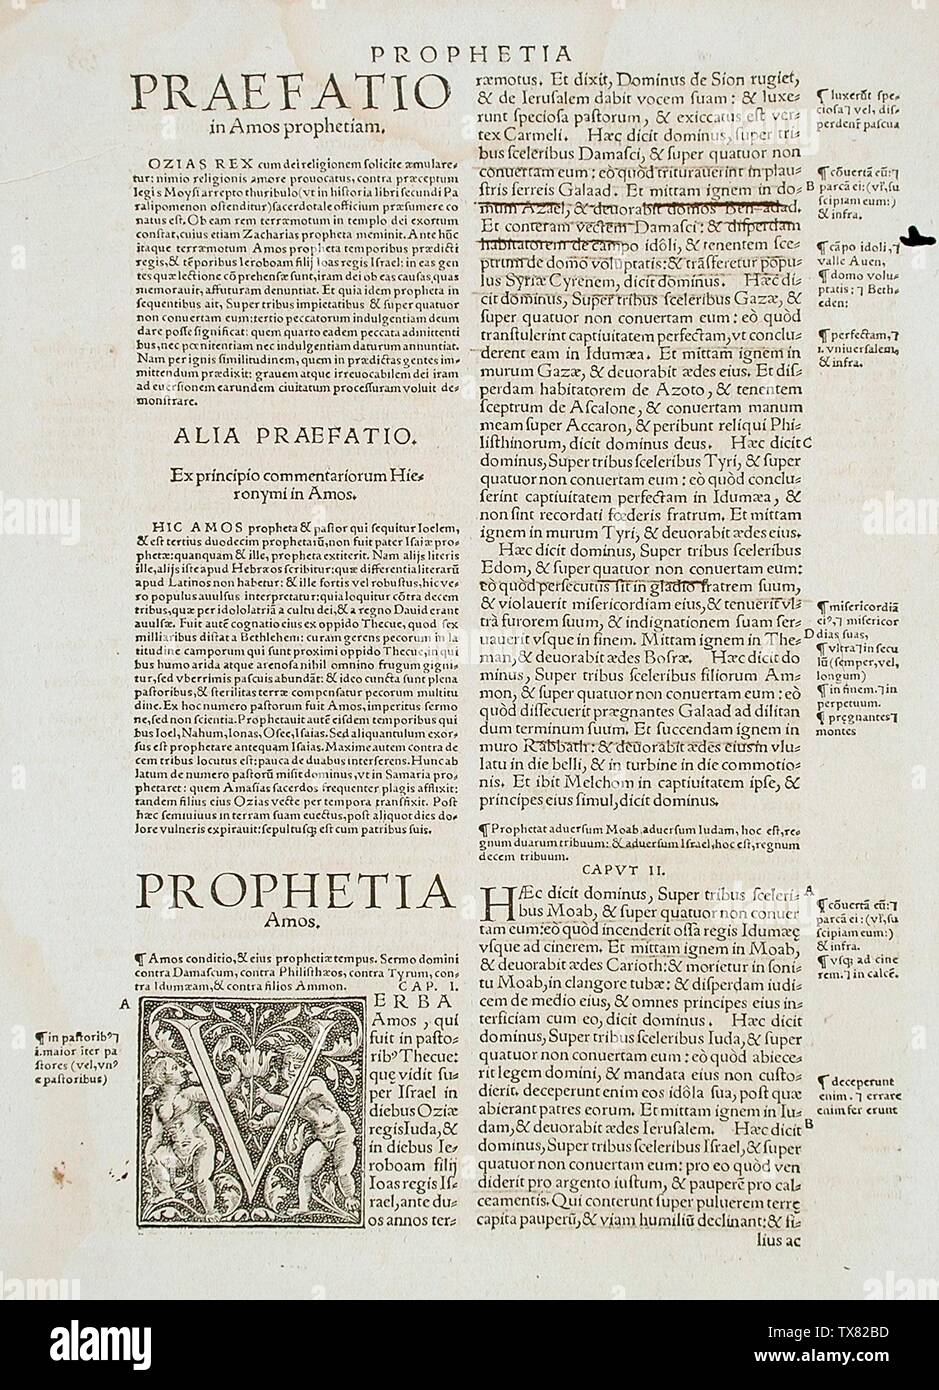 'Leaf from Breves in Eadem; English:  Germany, circa 1500 Prints Letterpress Gift of Abbey Rents (M.64.3.22a) Prints and Drawings; circa 1500 date QS:P571,+1500-00-00T00:00:00Z/9,P1480,Q5727902; ' - Stock Image